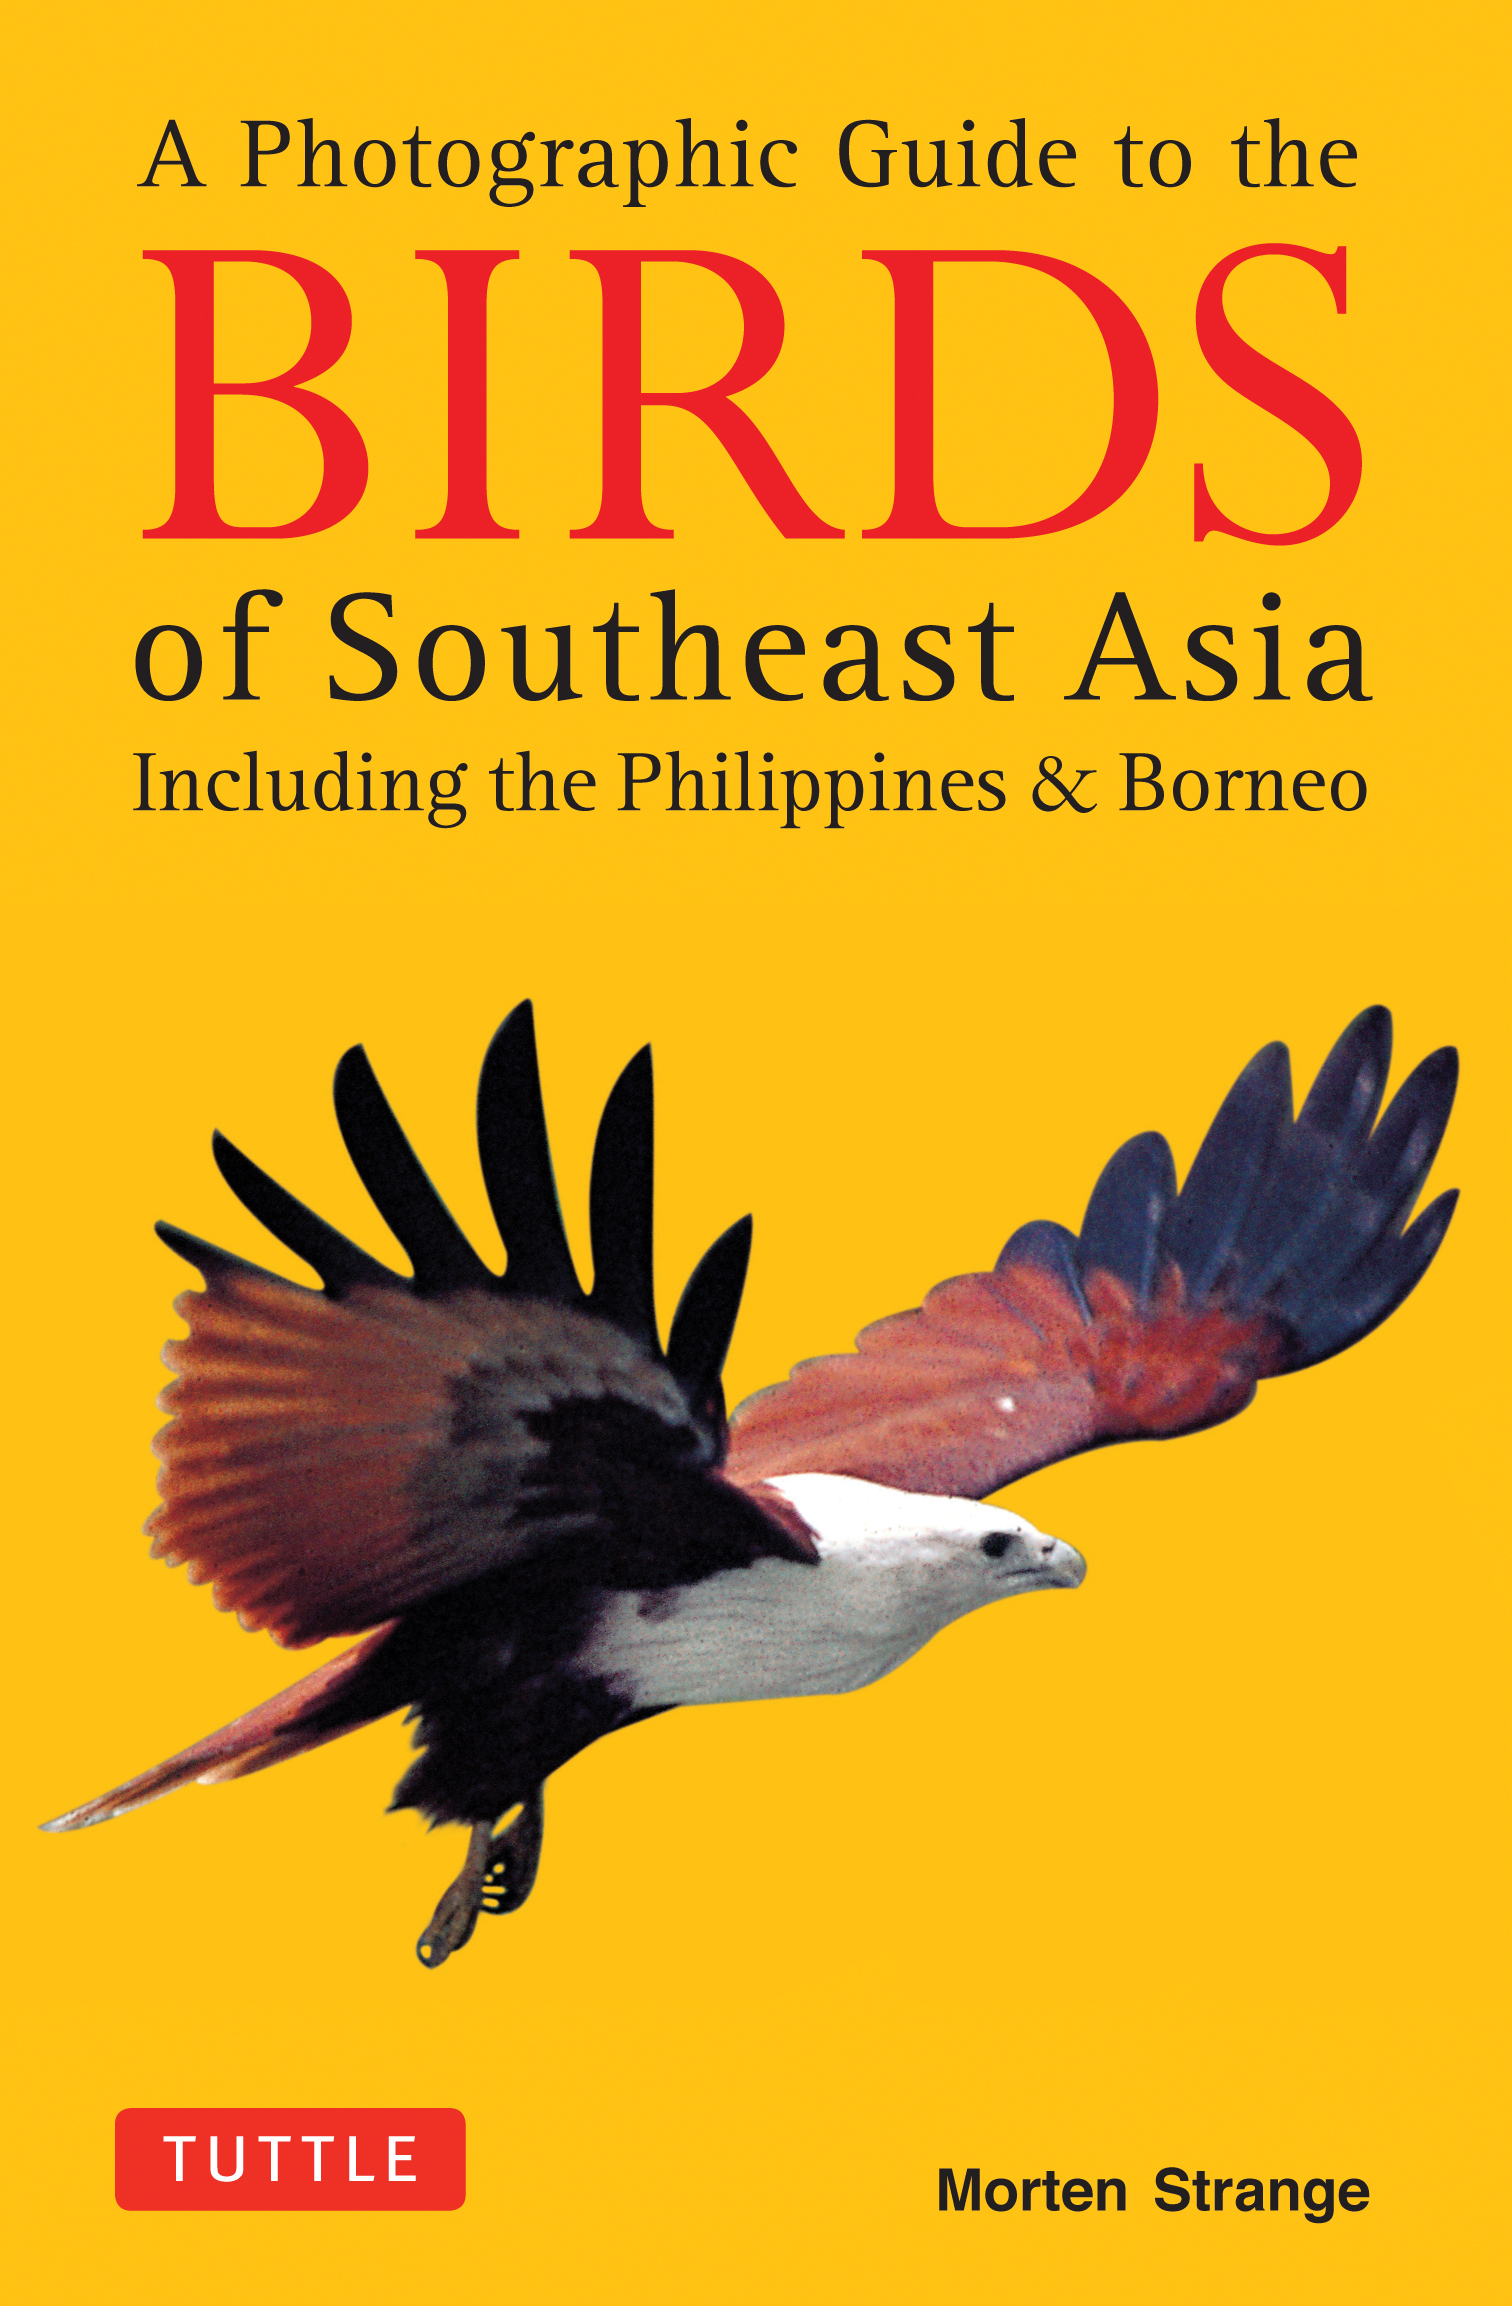 Photographic-guide-to-the-birds-of-southeast-asia-9780804844512_hr